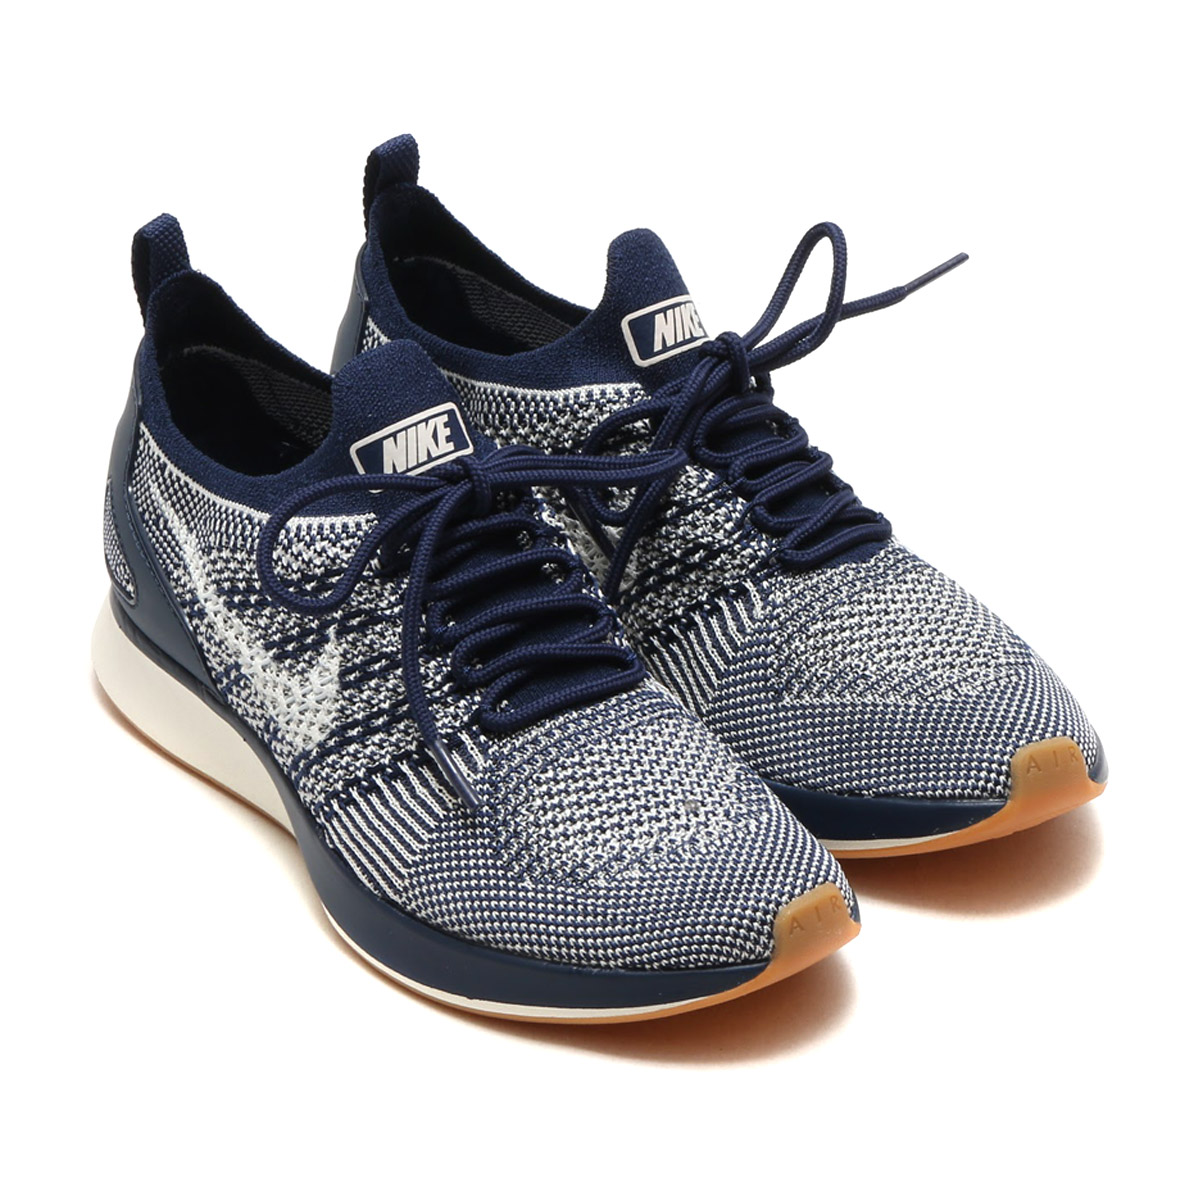 227fc23e9ccb It is modern and arranges air Maria born in the 80s. I comprise Flyknit  upper wrapping up a foot